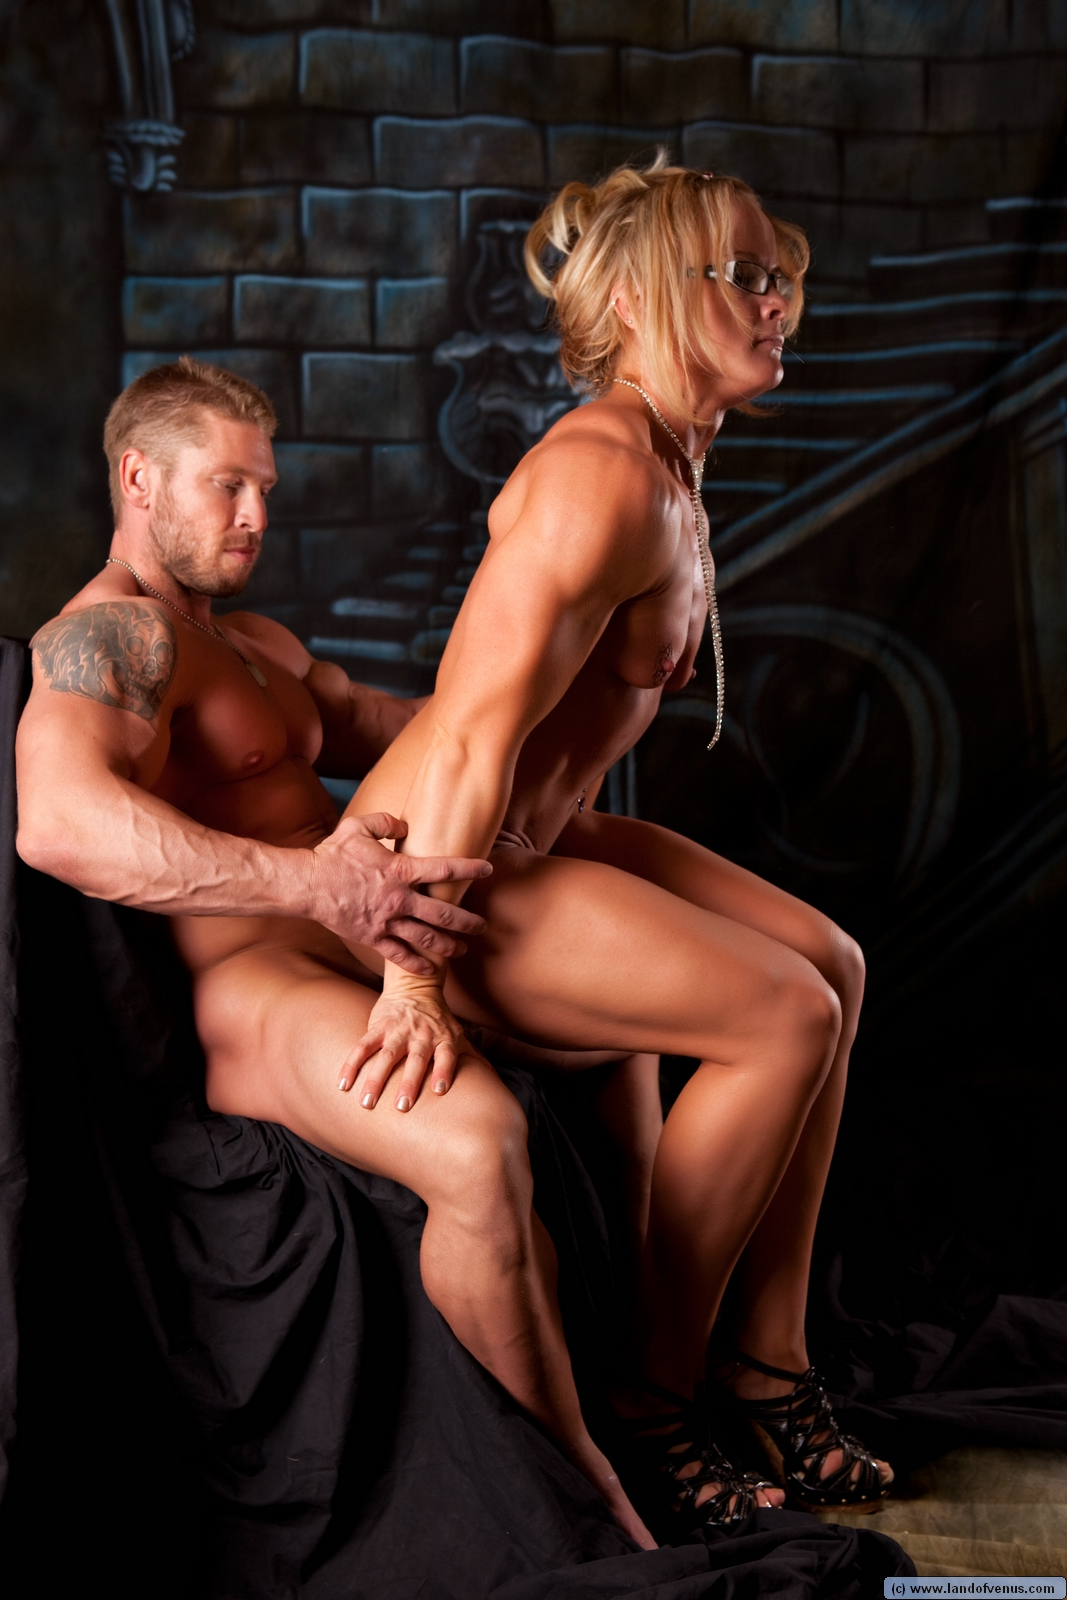 A Few More Of Muscle Girl  Her Boy-1216